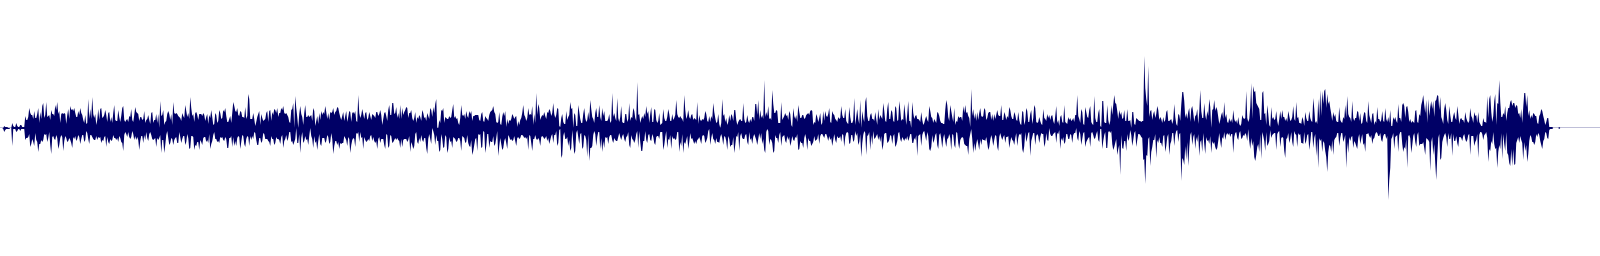 waveform of track #110951